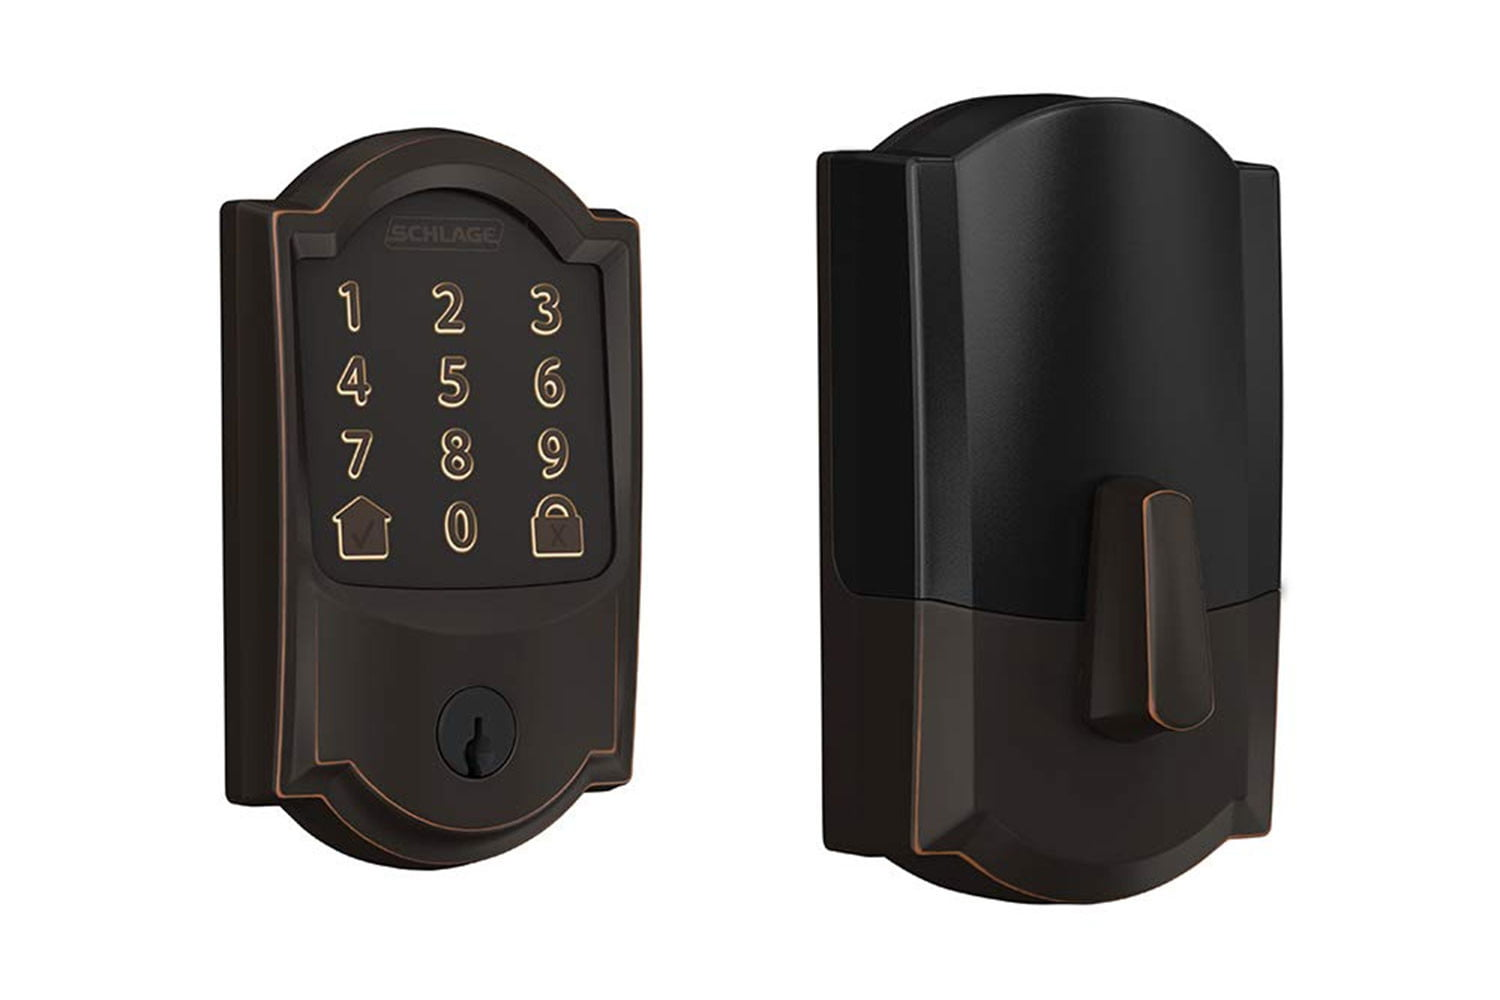 Schlage Encode review